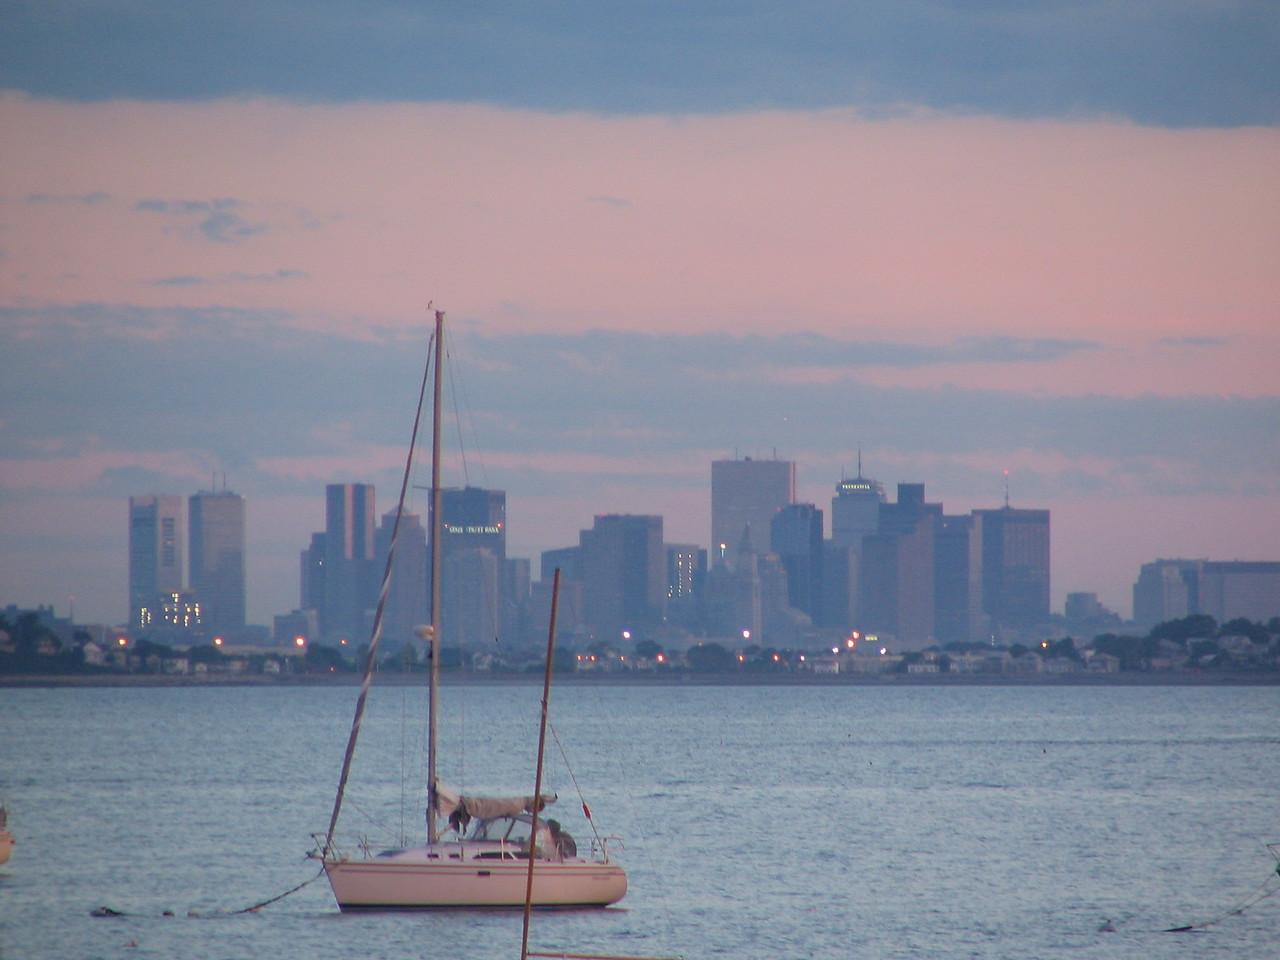 Boston skyline taken from Nahant marina